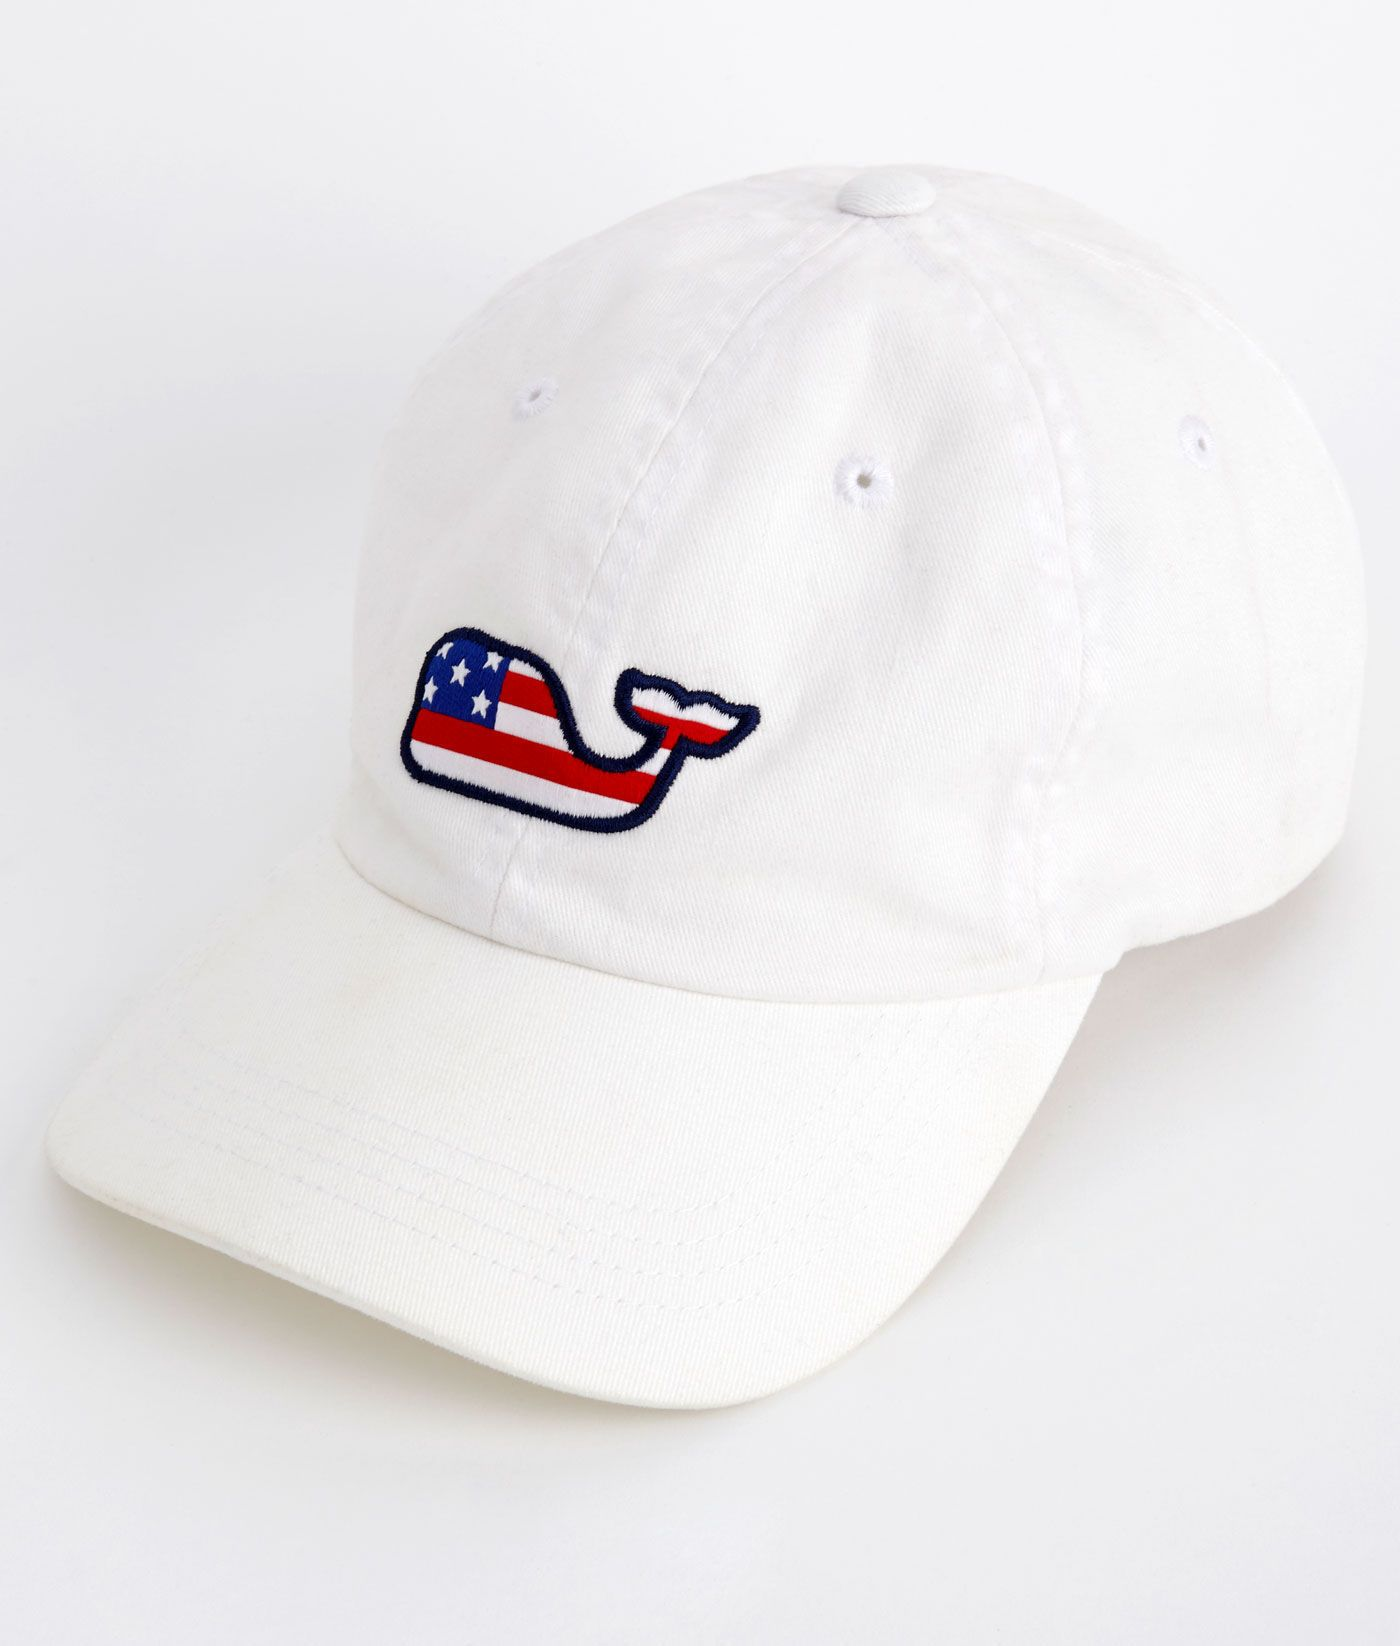 31f0b7022b98d Womens Hats  Flag Whale Hat – Vineyard Vines